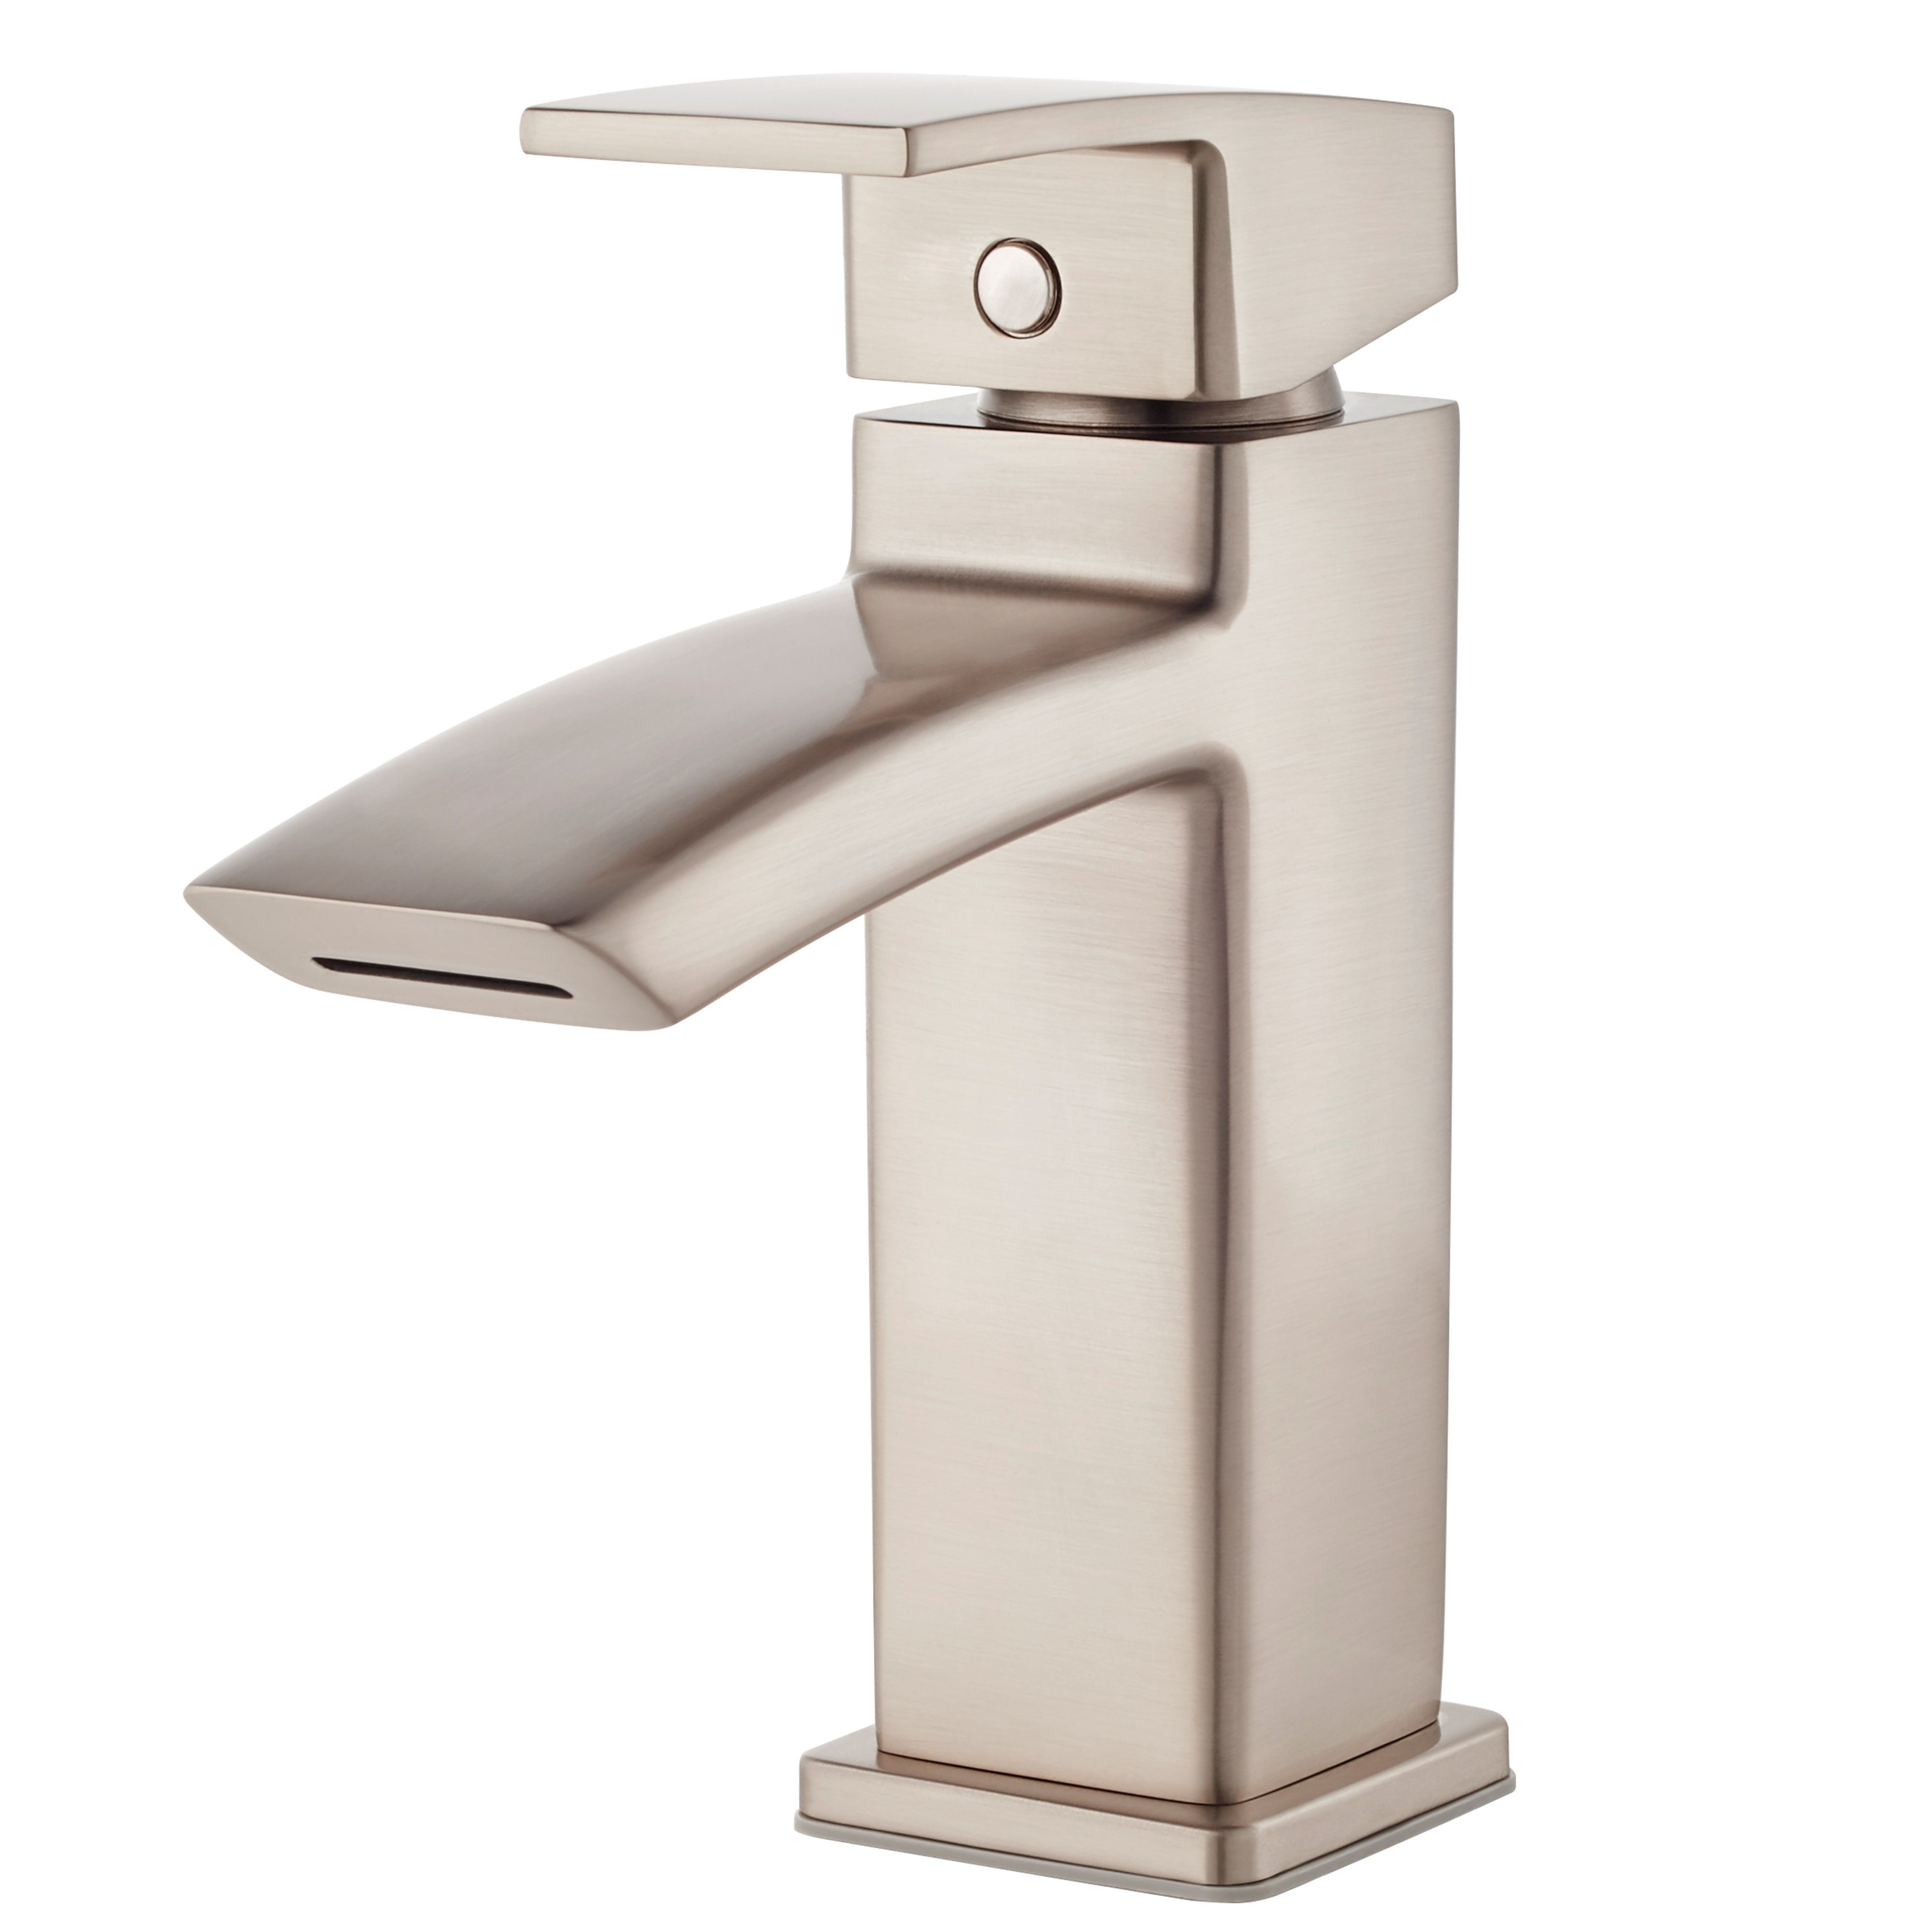 pfister sink vessel rustic with head kitc collection nickel shower bath ashfield bathroom handle faucet bronze price tub waterfall your remodeling master